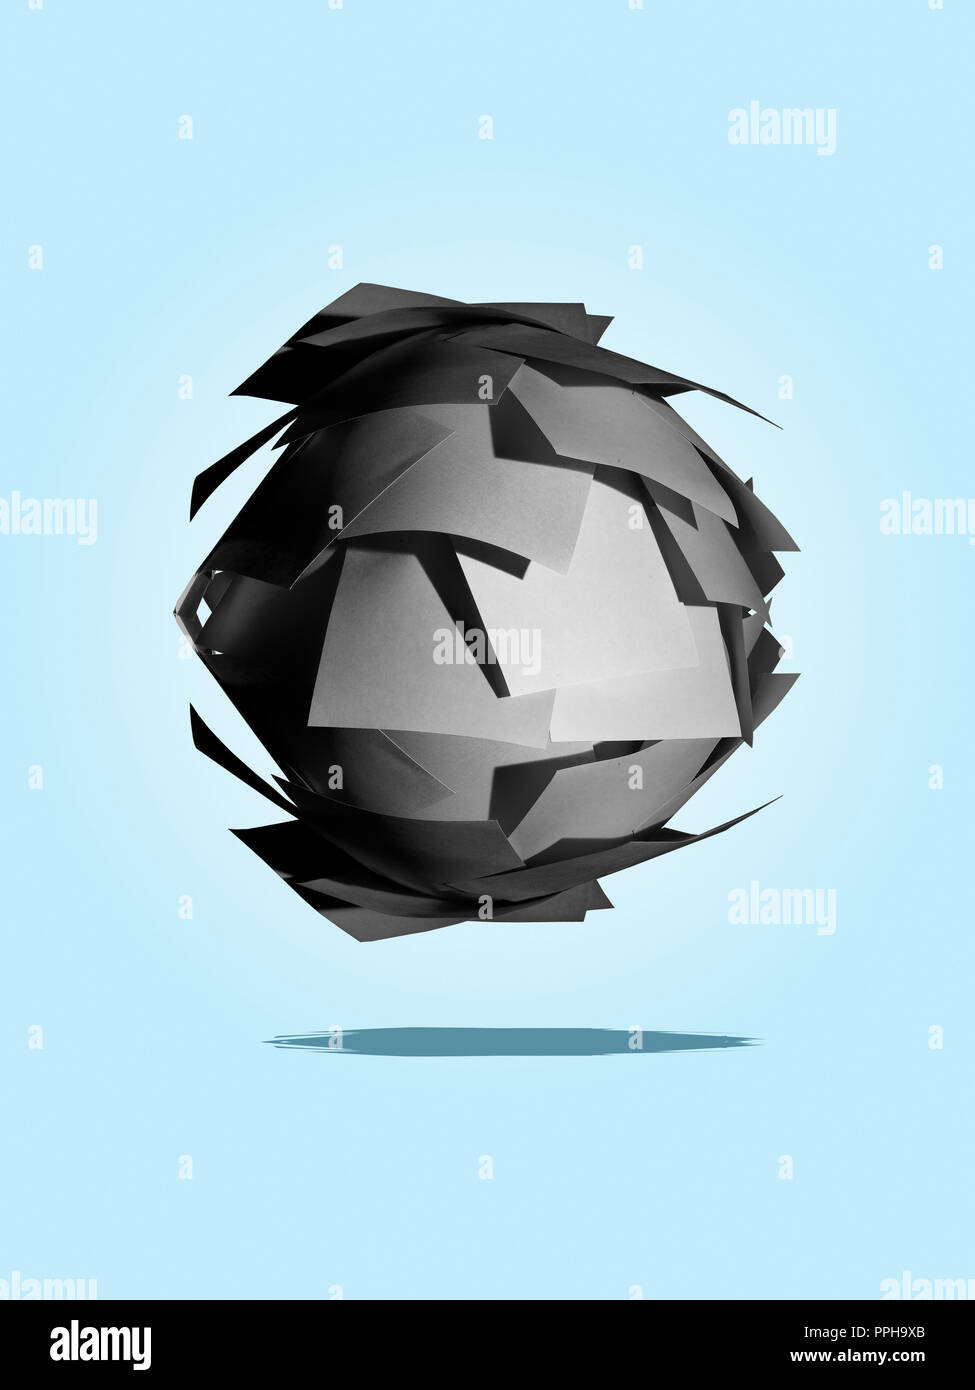 Ball made of gray Post It notes concept - Stock Image